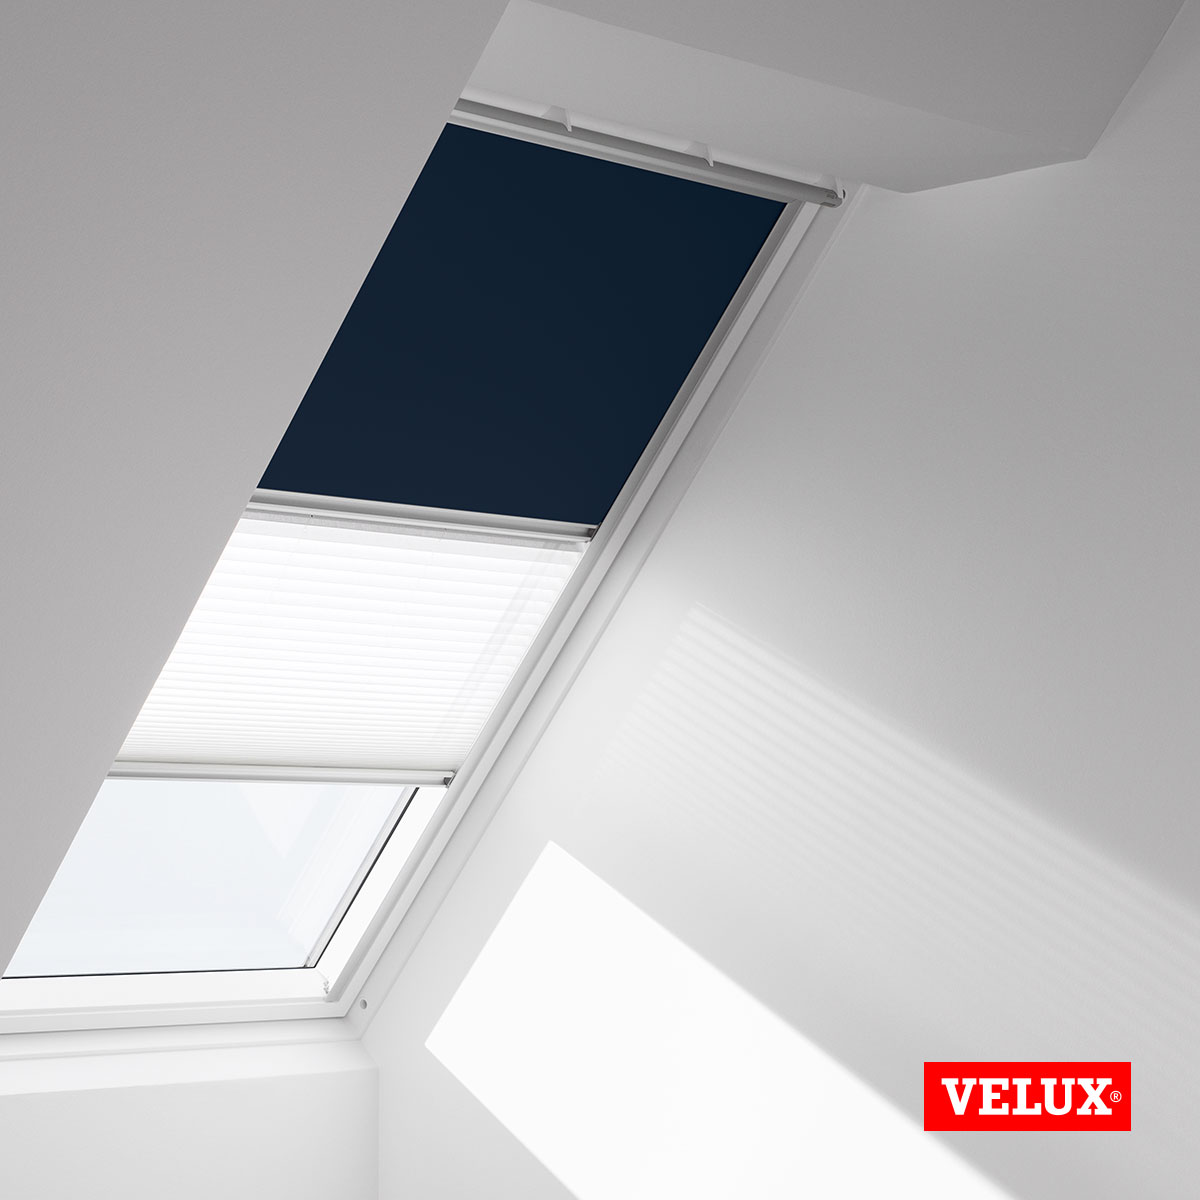 velux ghl 606 beautiful basic privacy with velux ghl 606 amazing great store fentre de toit. Black Bedroom Furniture Sets. Home Design Ideas